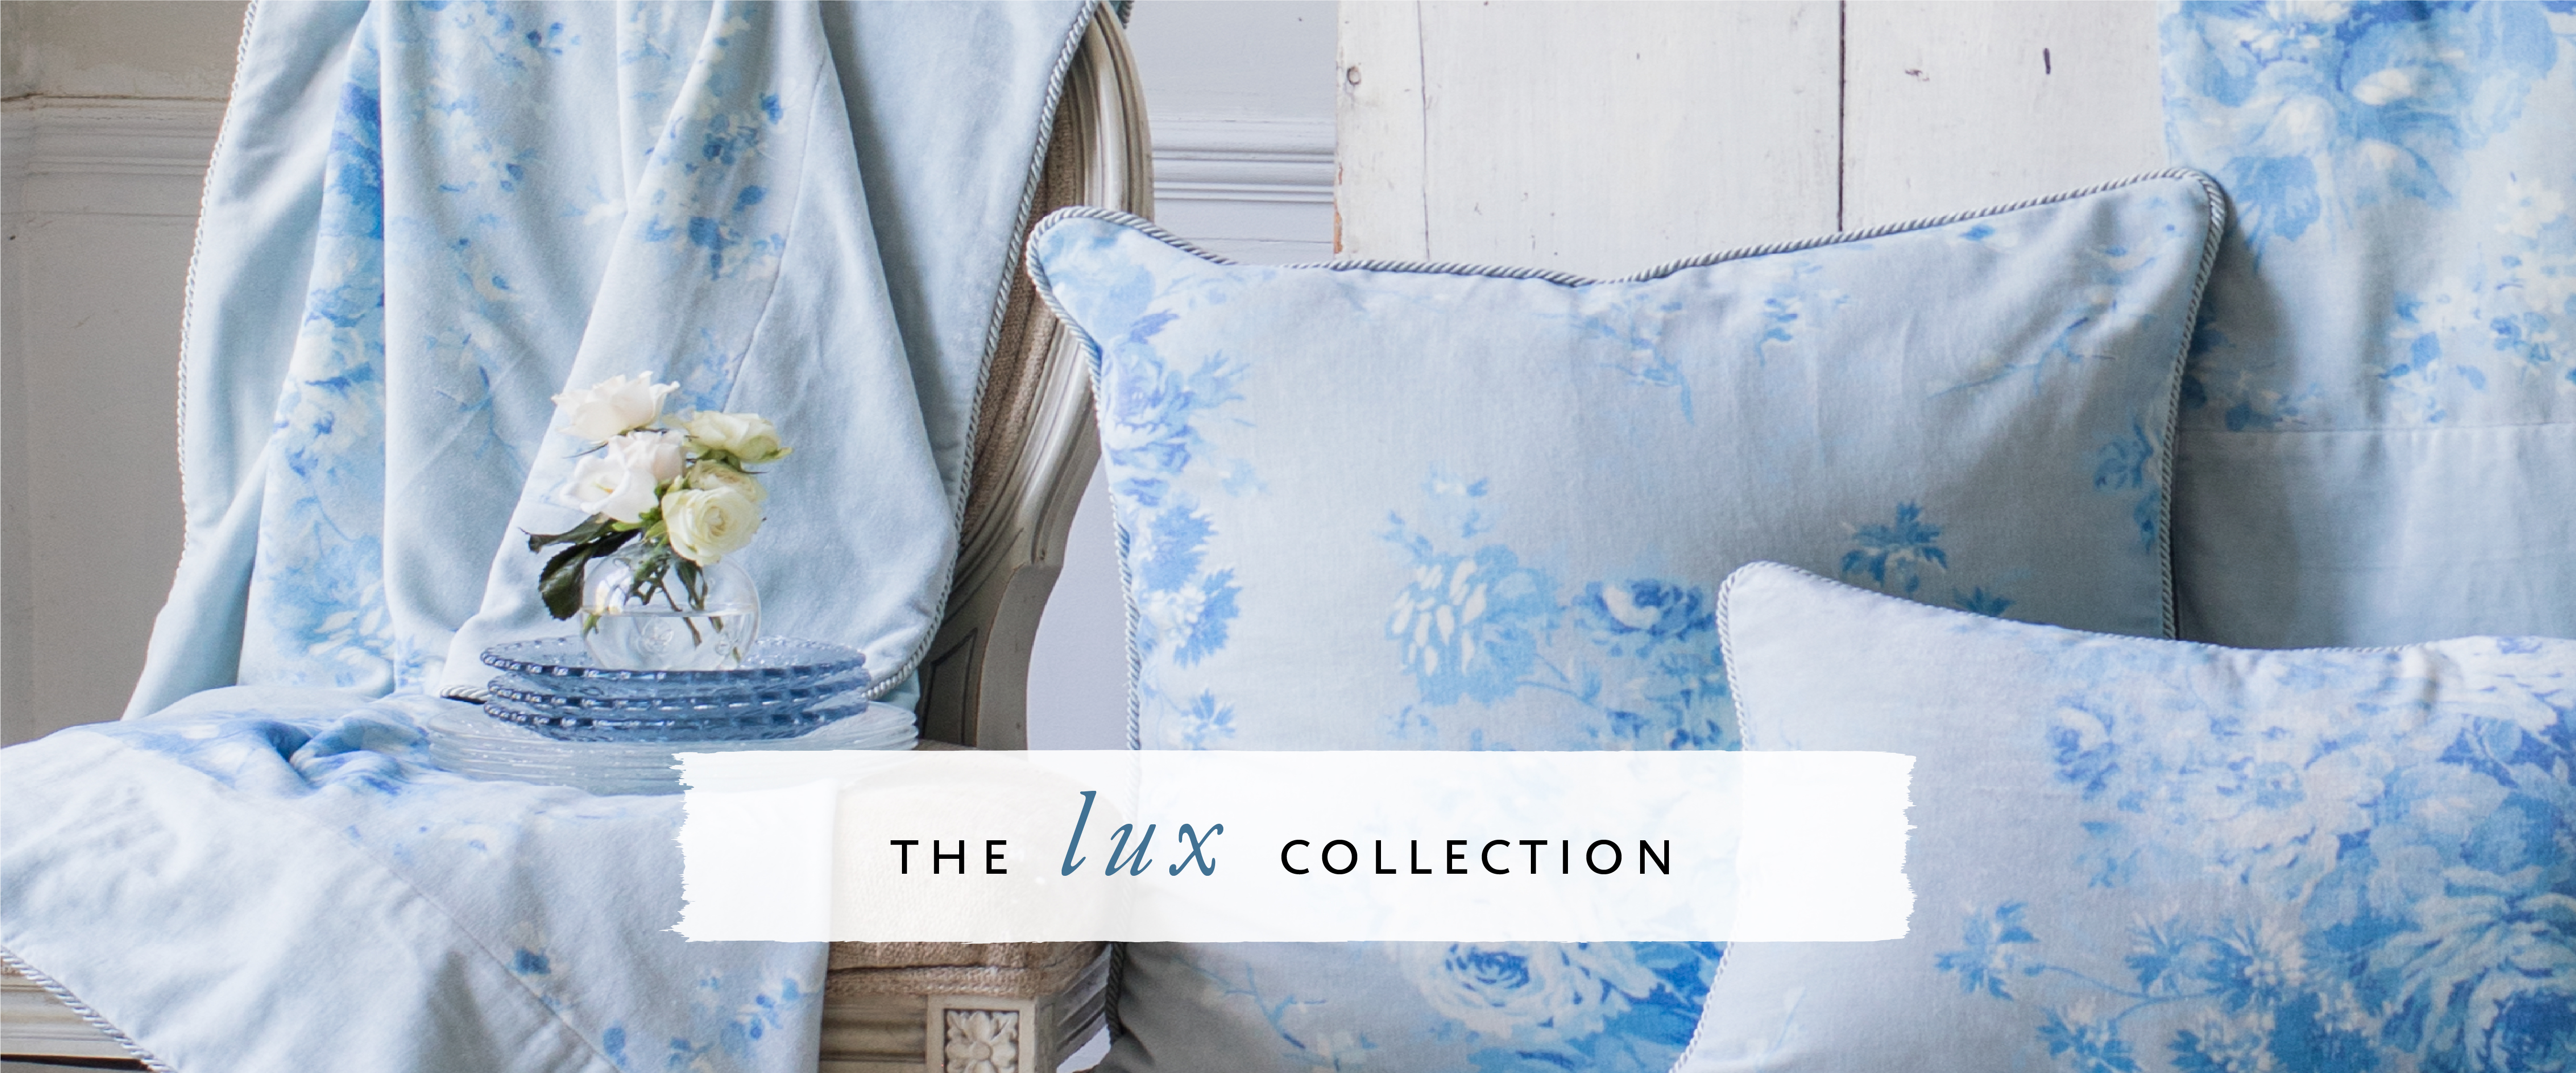 The Lux Collection